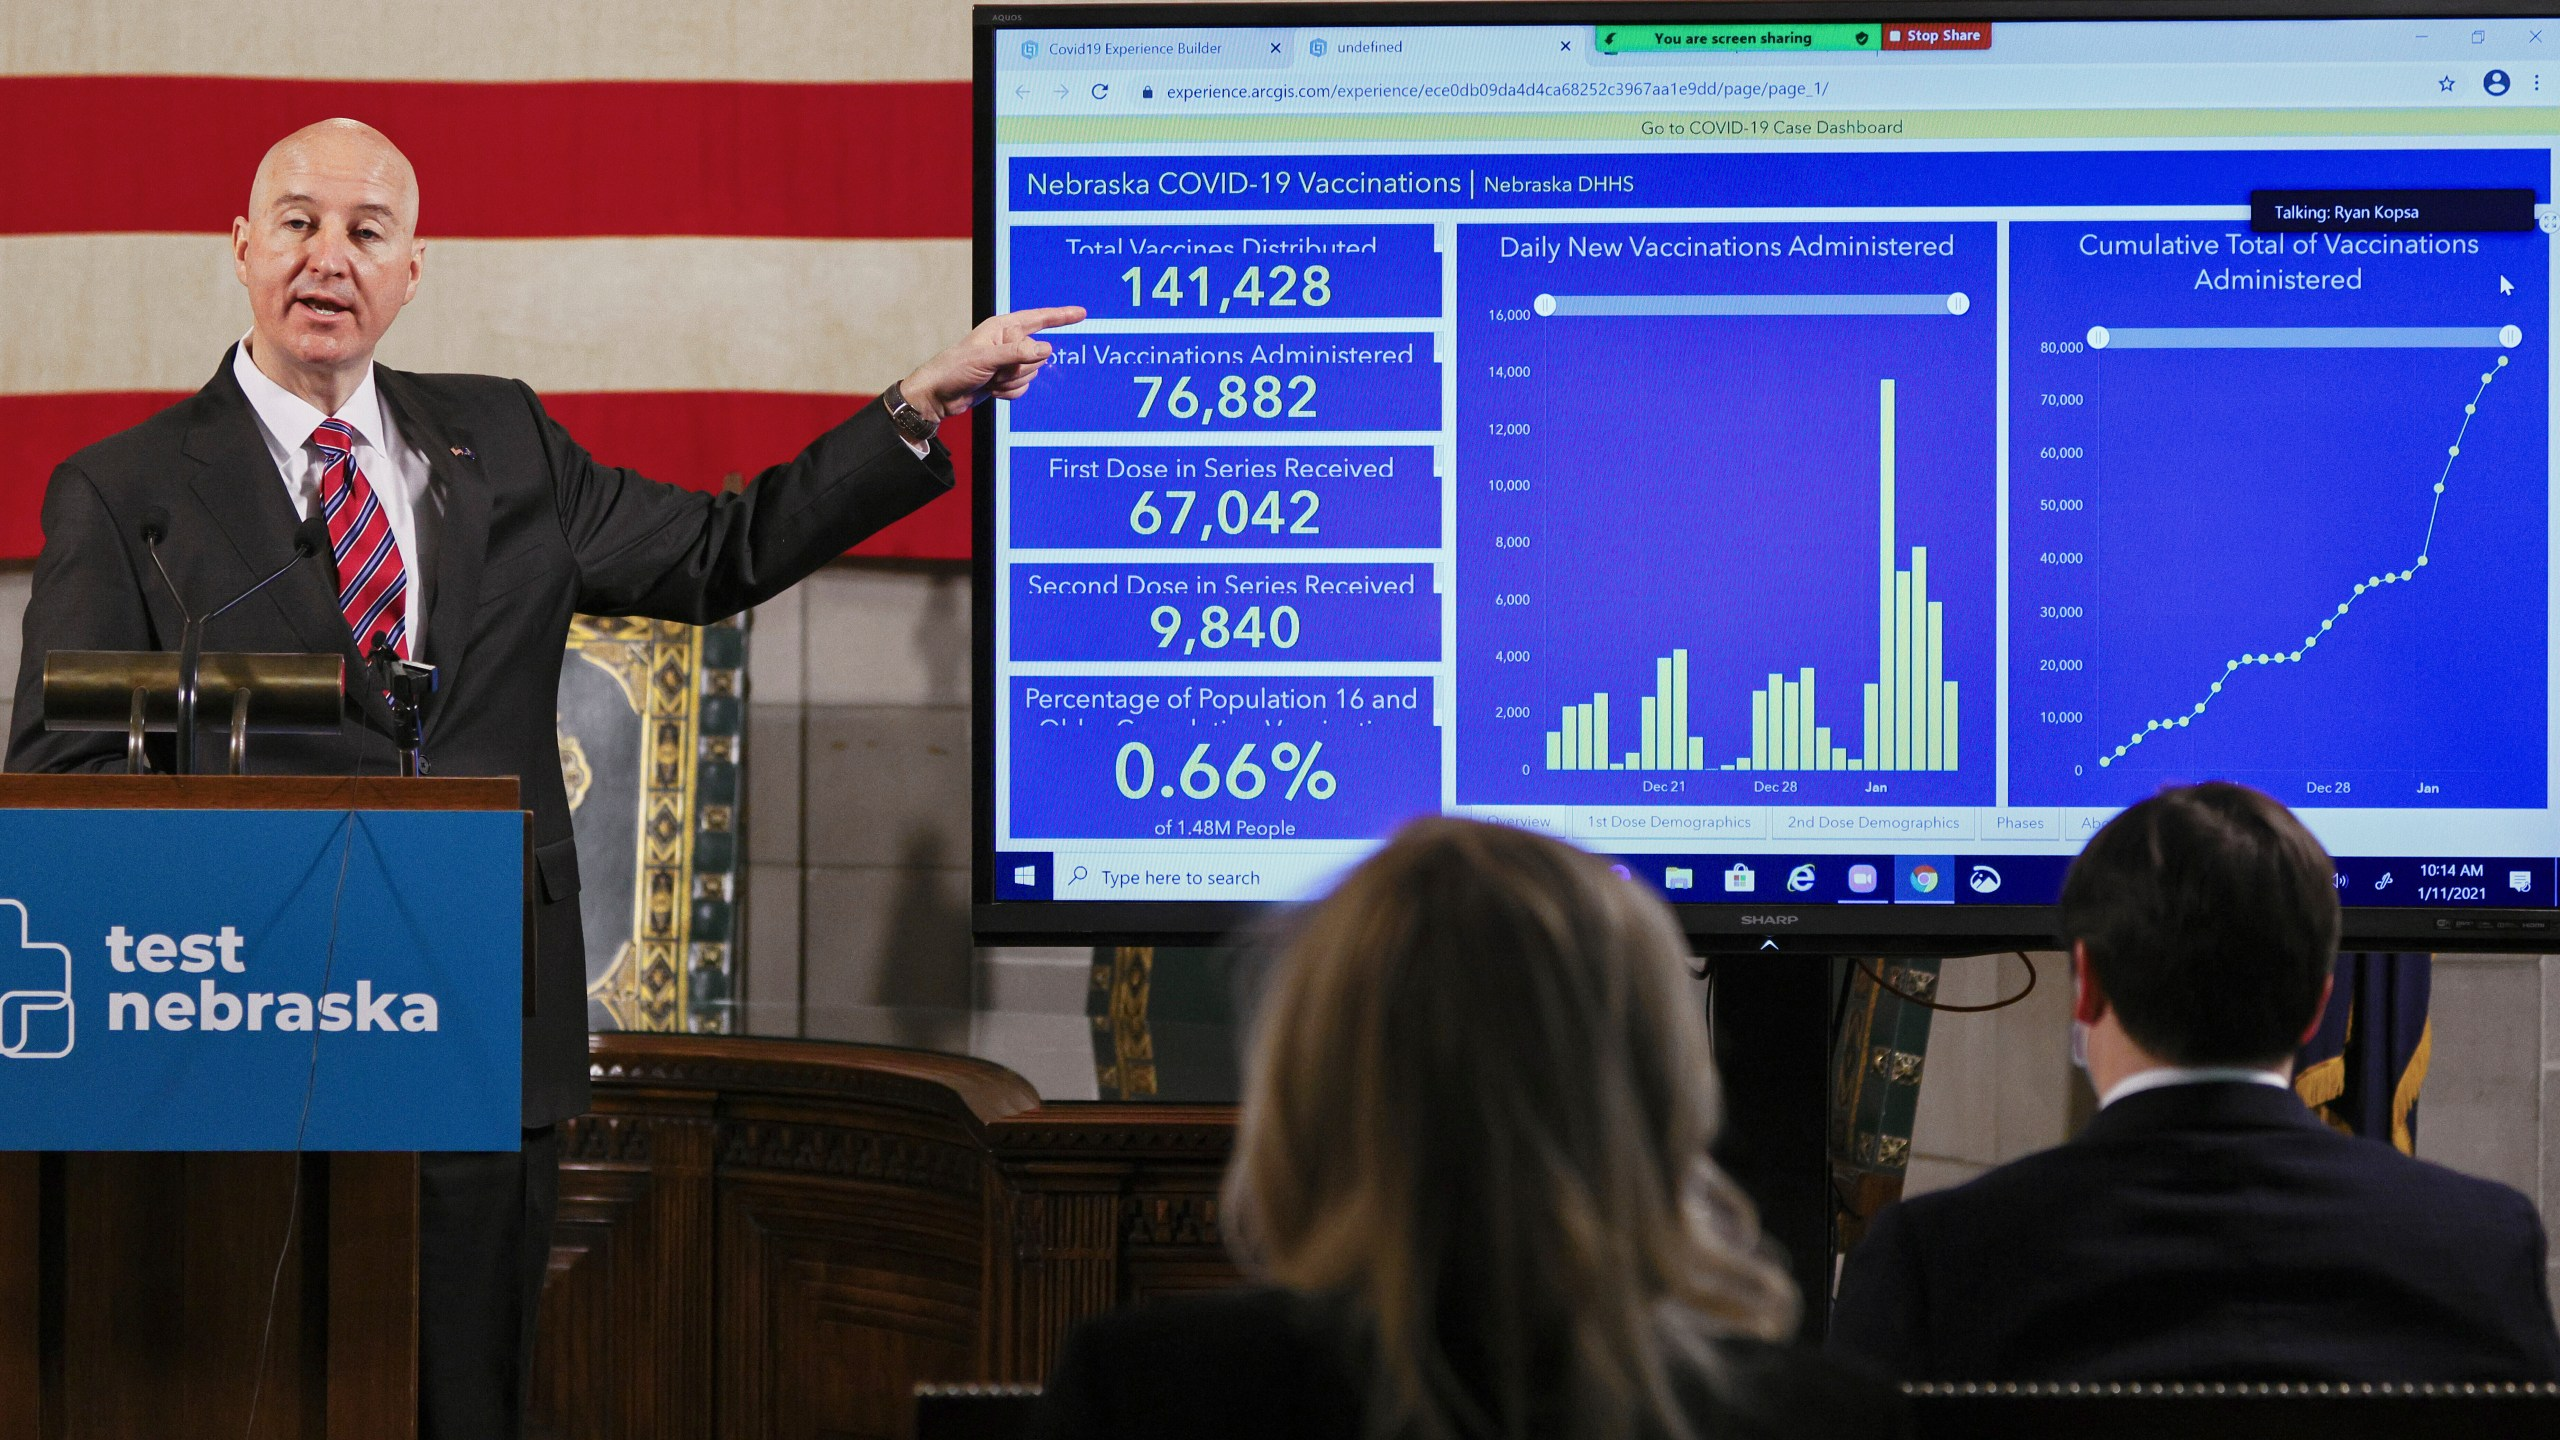 In this Jan. 11, 2021 file photo, Nebraska Gov. Pete Rickets points to vaccination statistics during a news conference in Lincoln, Neb. (AP Photo/Nati Harnik, File)